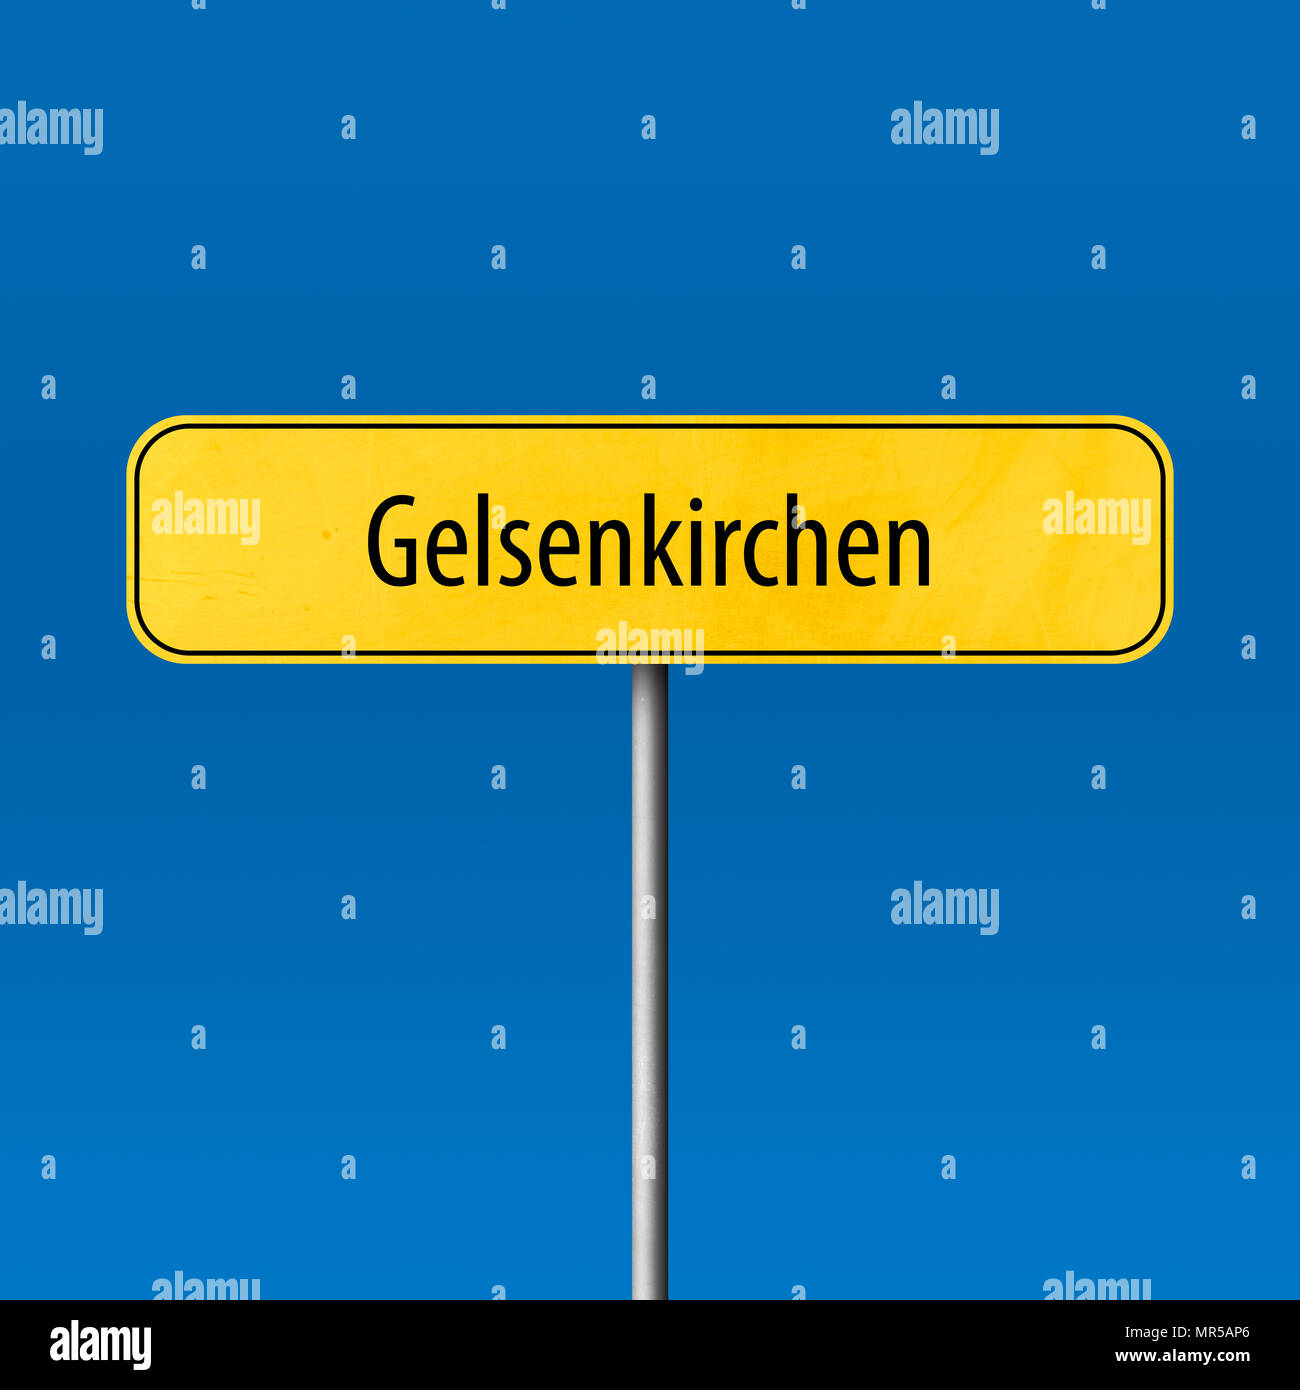 Gelsenkirchen - town sign, place name sign - Stock Image